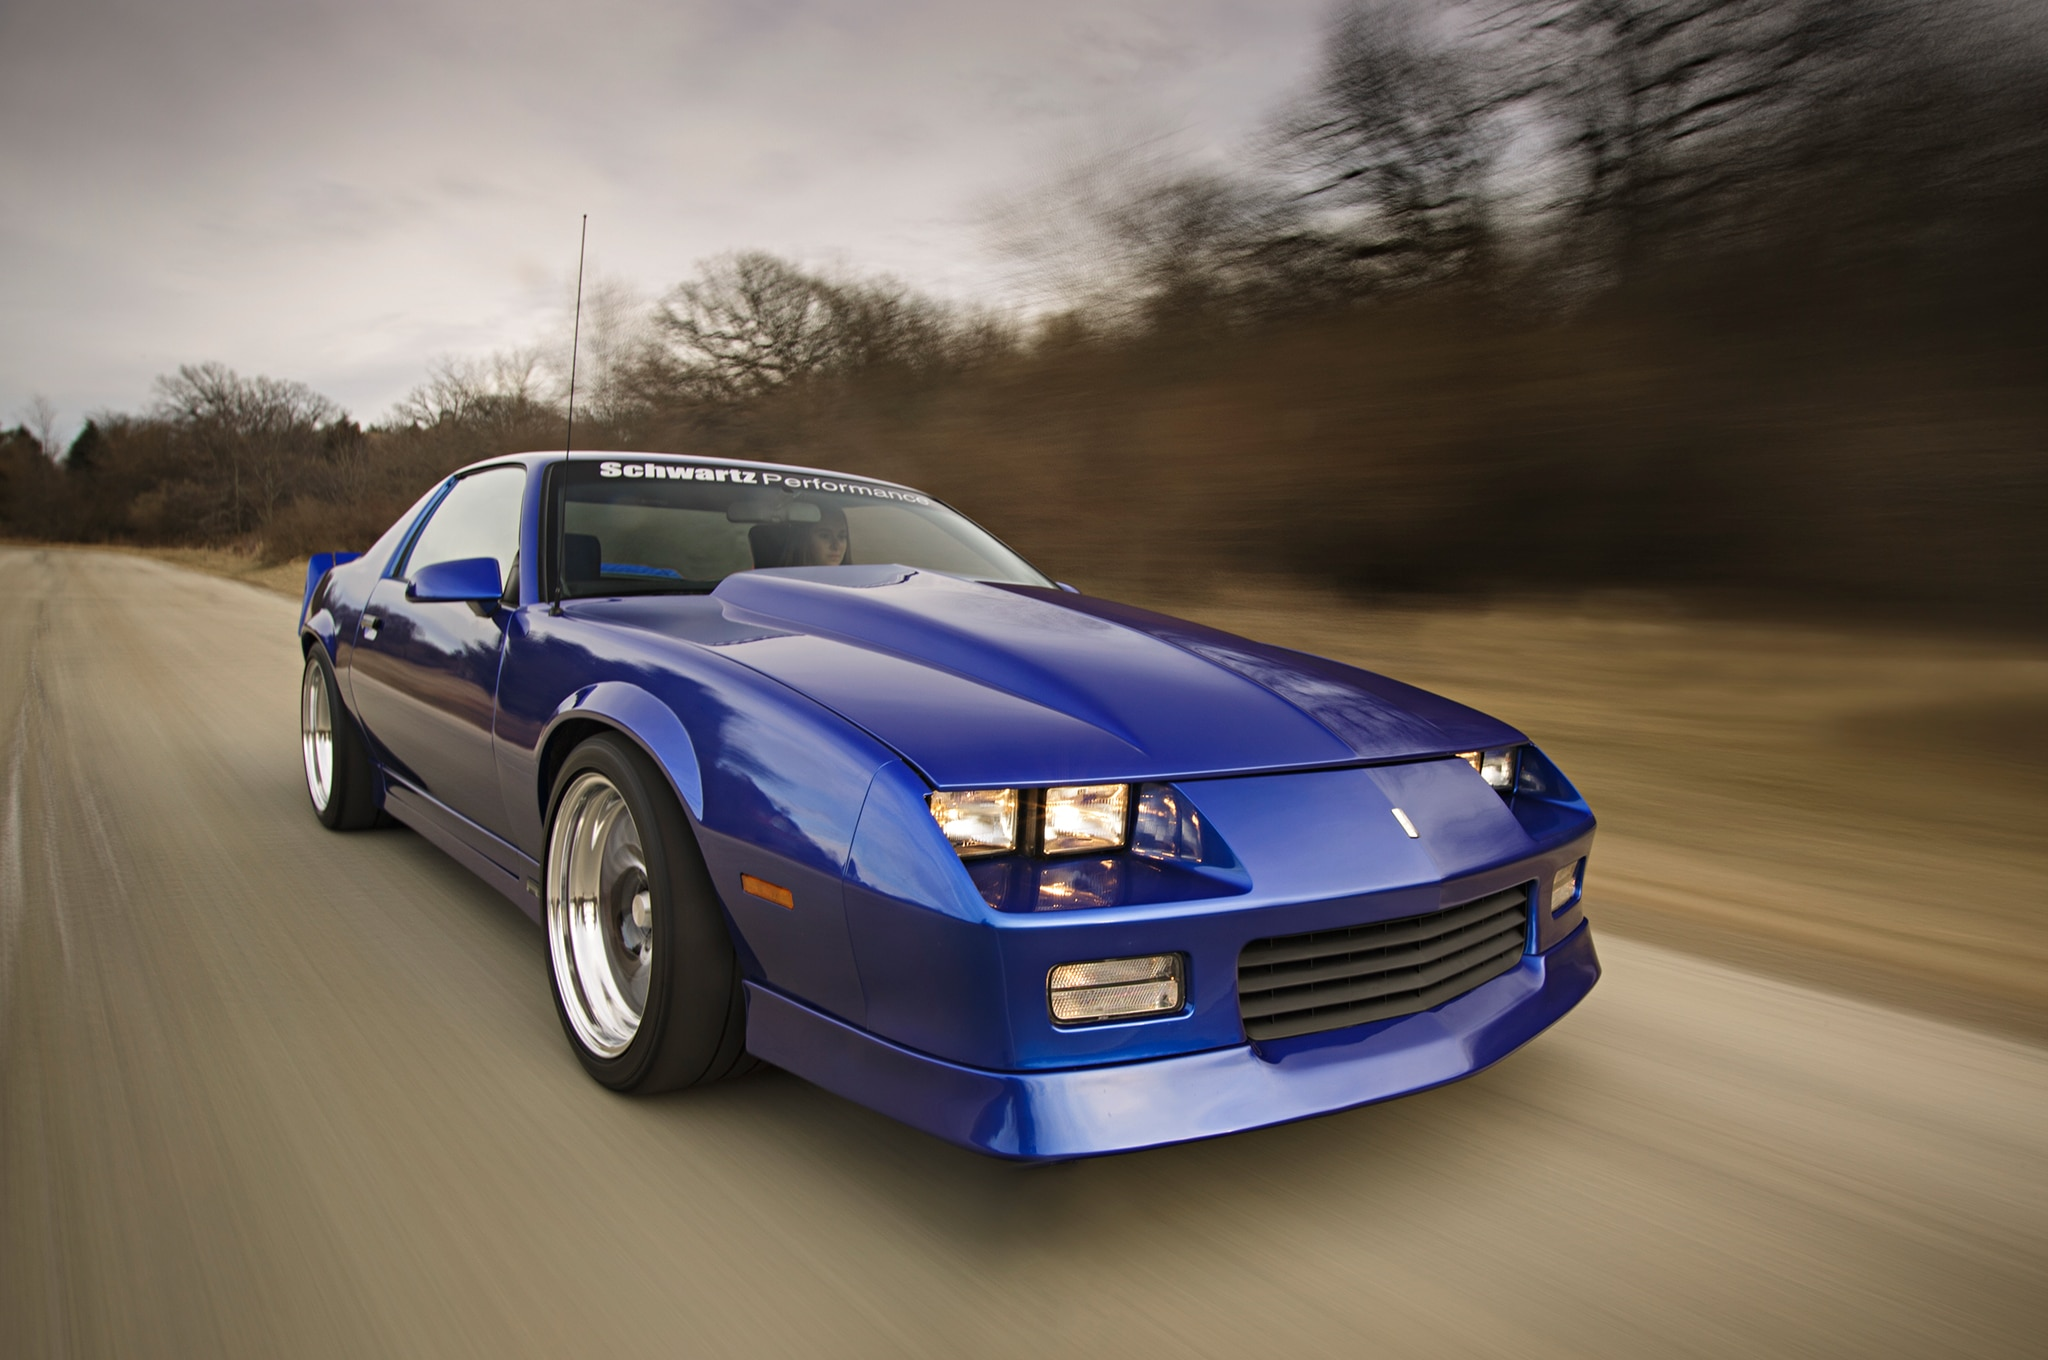 medium resolution of here s one of the coolest third gen camaros you ll ever see 1989 1989 camaro wiring diagram 1992 camaro interior wiring diagram